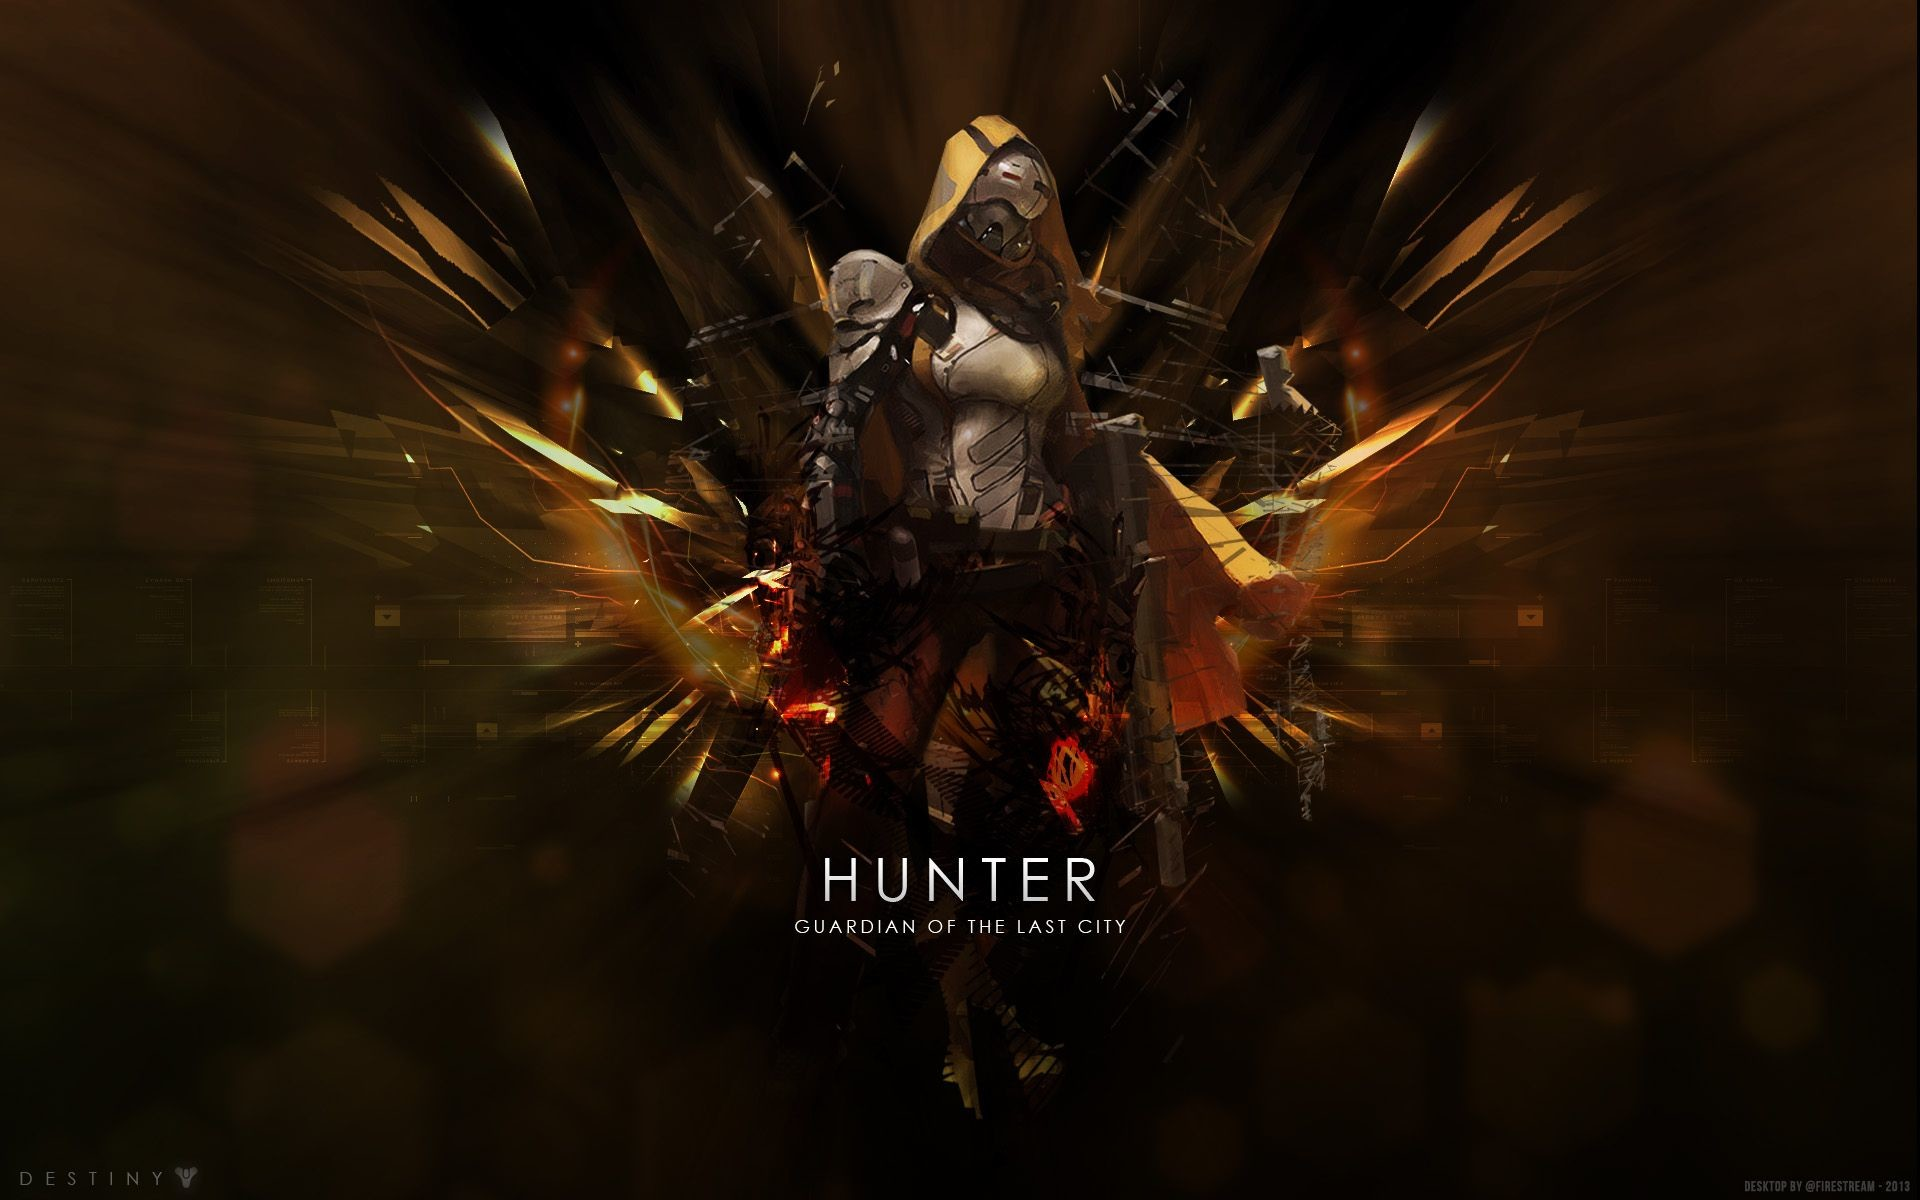 Res: 1920x1200, Destiny Hunter HD Wallpaper AWESOME THIS GAME IS FULLLLY AWESOME I AM NOT  KIDDING DID I MENTION THAT ITS AWESOME 'CAUSE IT IS AWESOME BTW IT IS  AWESOME